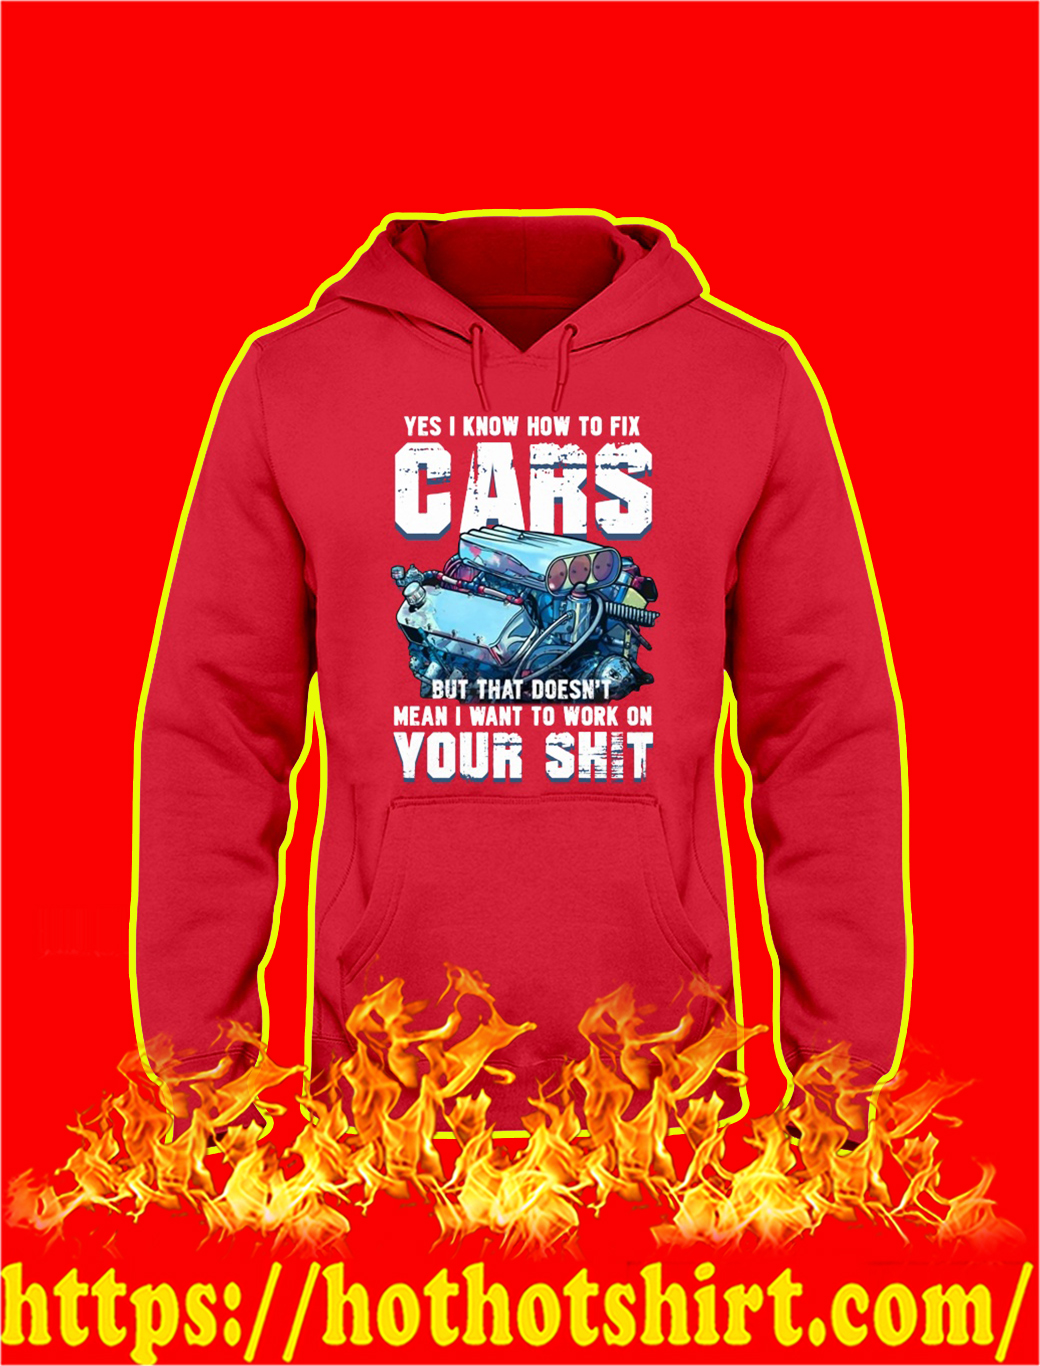 Yes I Know How To Fix Cars But That Doesn't Mean I Want To Work On Your Shit hooded sweatshirt